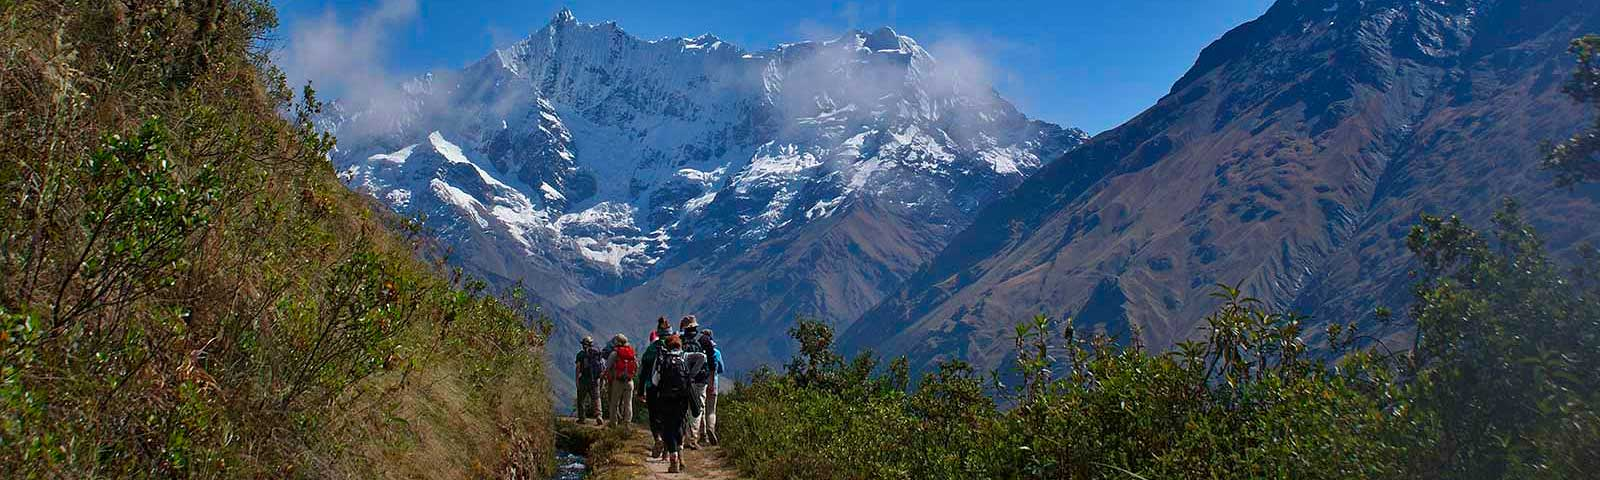 SALKANTAY TREK TO MACHU PICCHU in 04 days